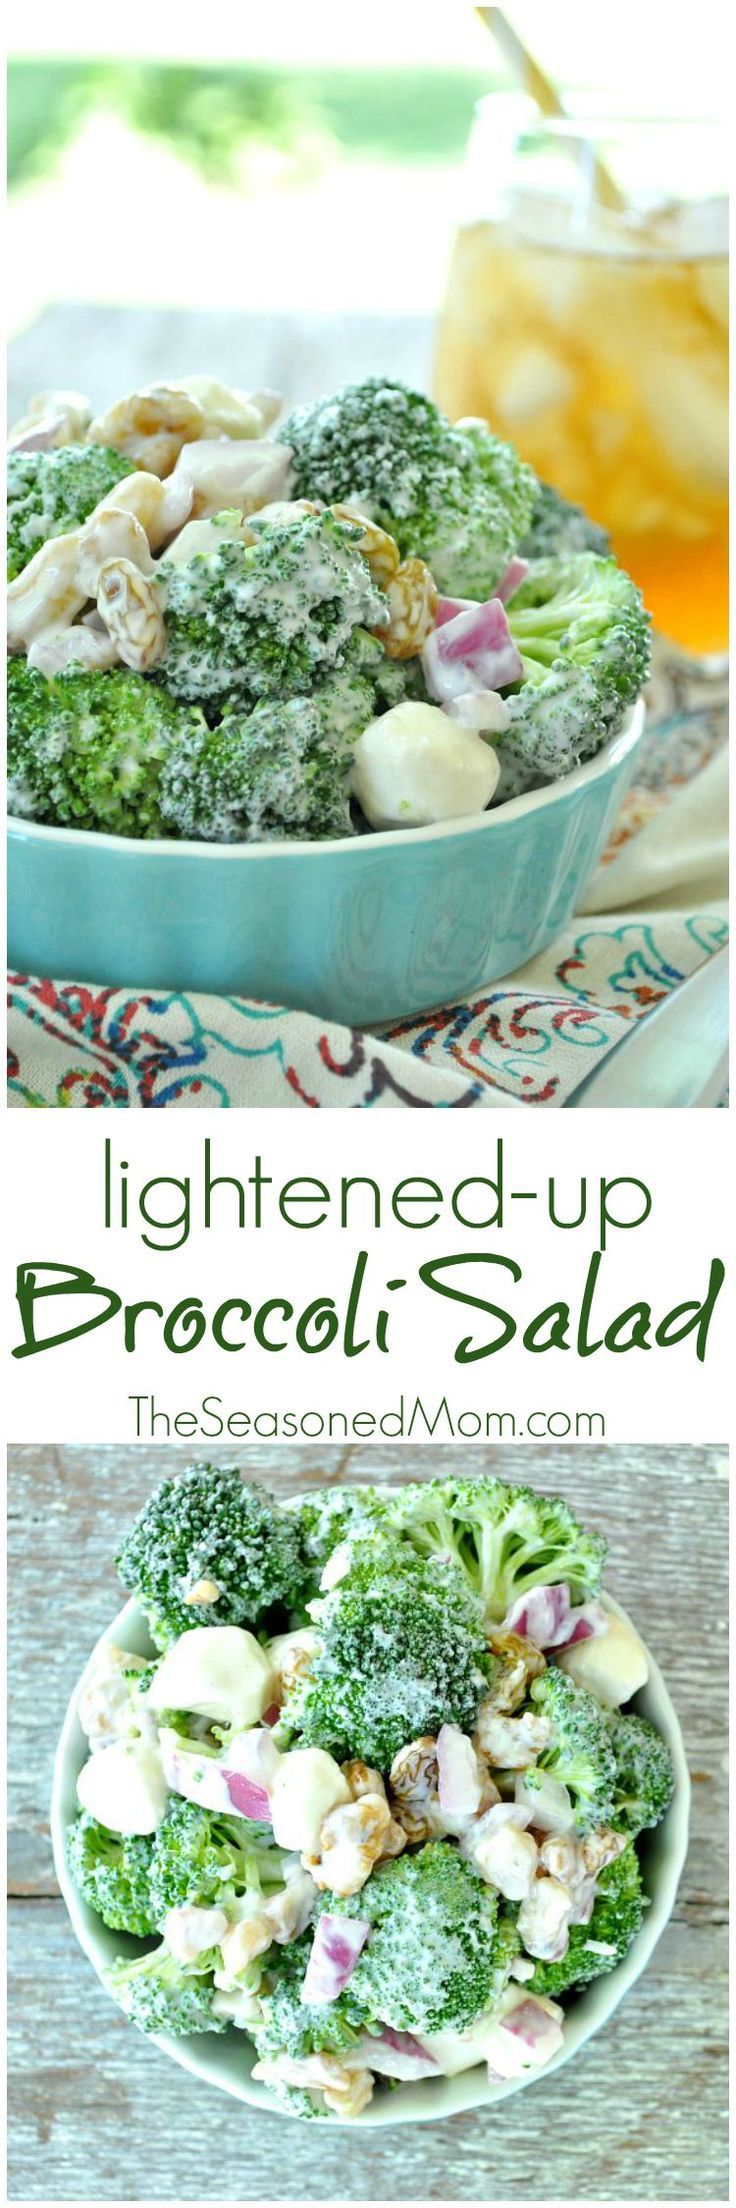 This Lightened-Up Broccoli Salad is packed with a variety of textures and flavors for a crowd-pleasing side dish that comes together in just minutes! This is simple, healthy, clean eating food that tastes amazing! #ad #FinestGrillathon